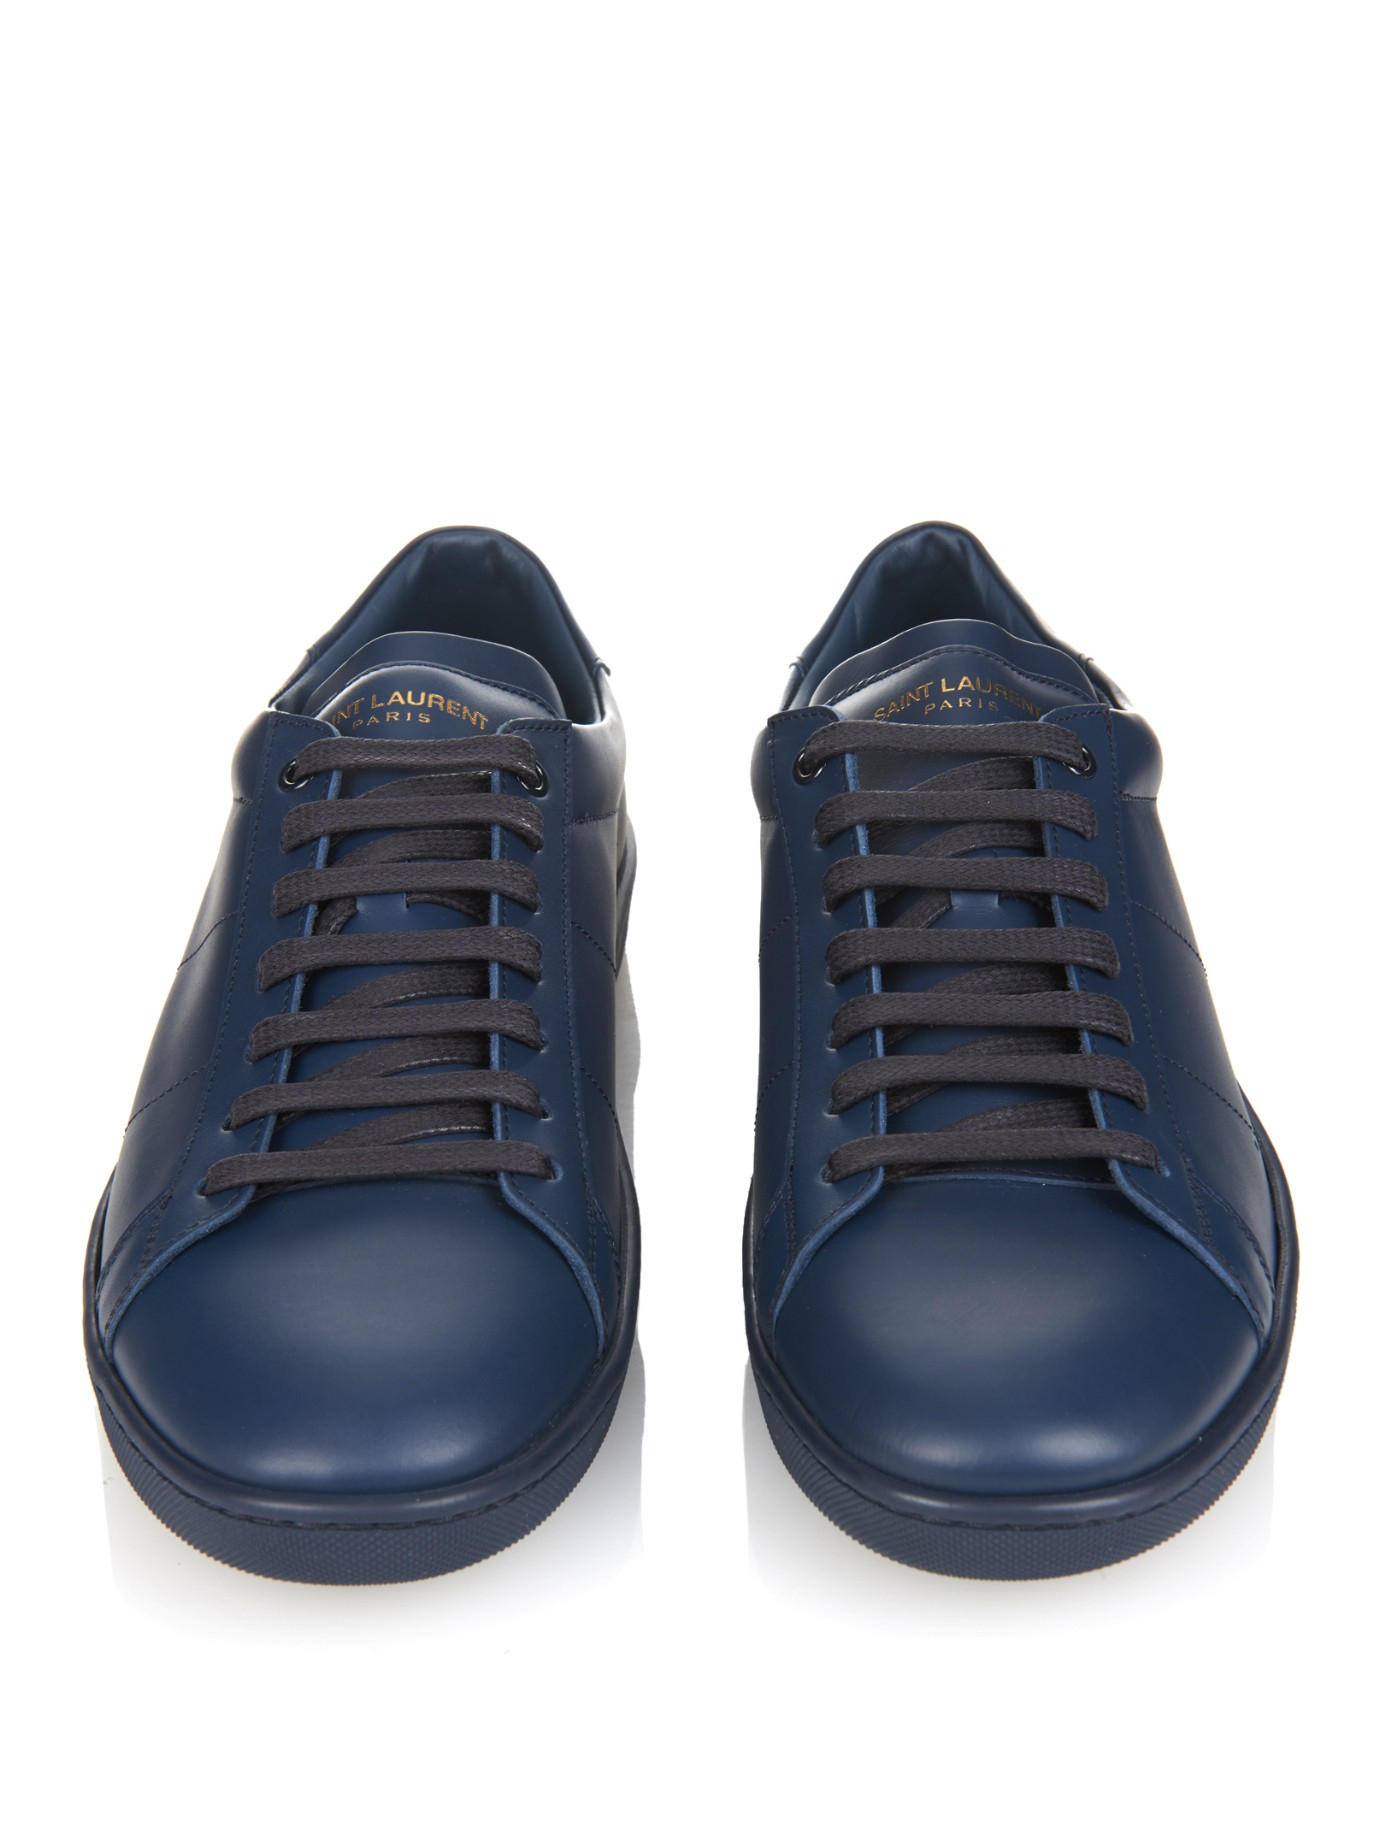 Online Shopping Saint Laurent Leather Trainers Clearance Buy Cheap Fast Delivery Nrdn5P